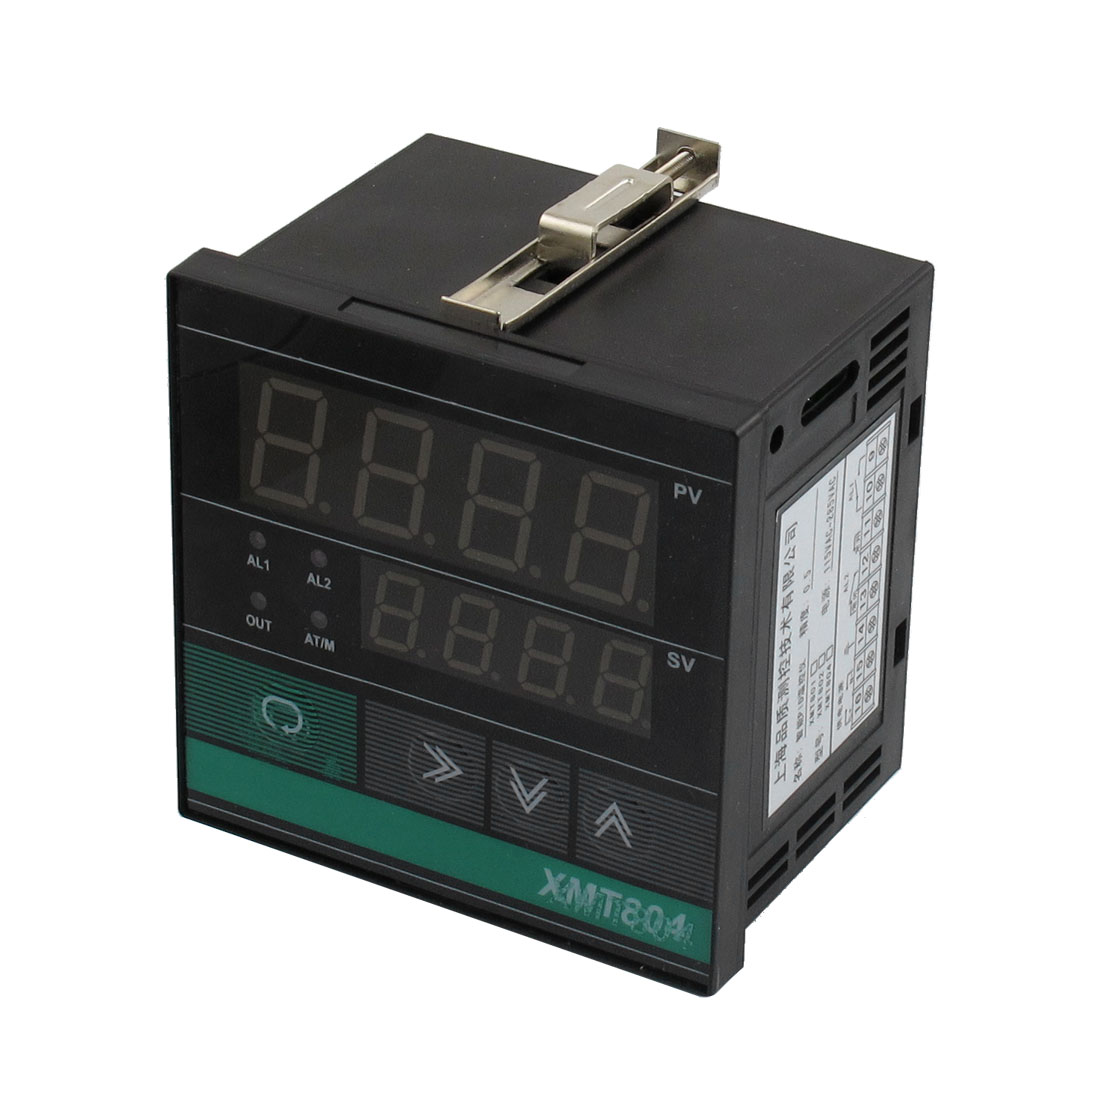 XMT-804 SSR Digital PV SV Display Controller Temperature Control Meter